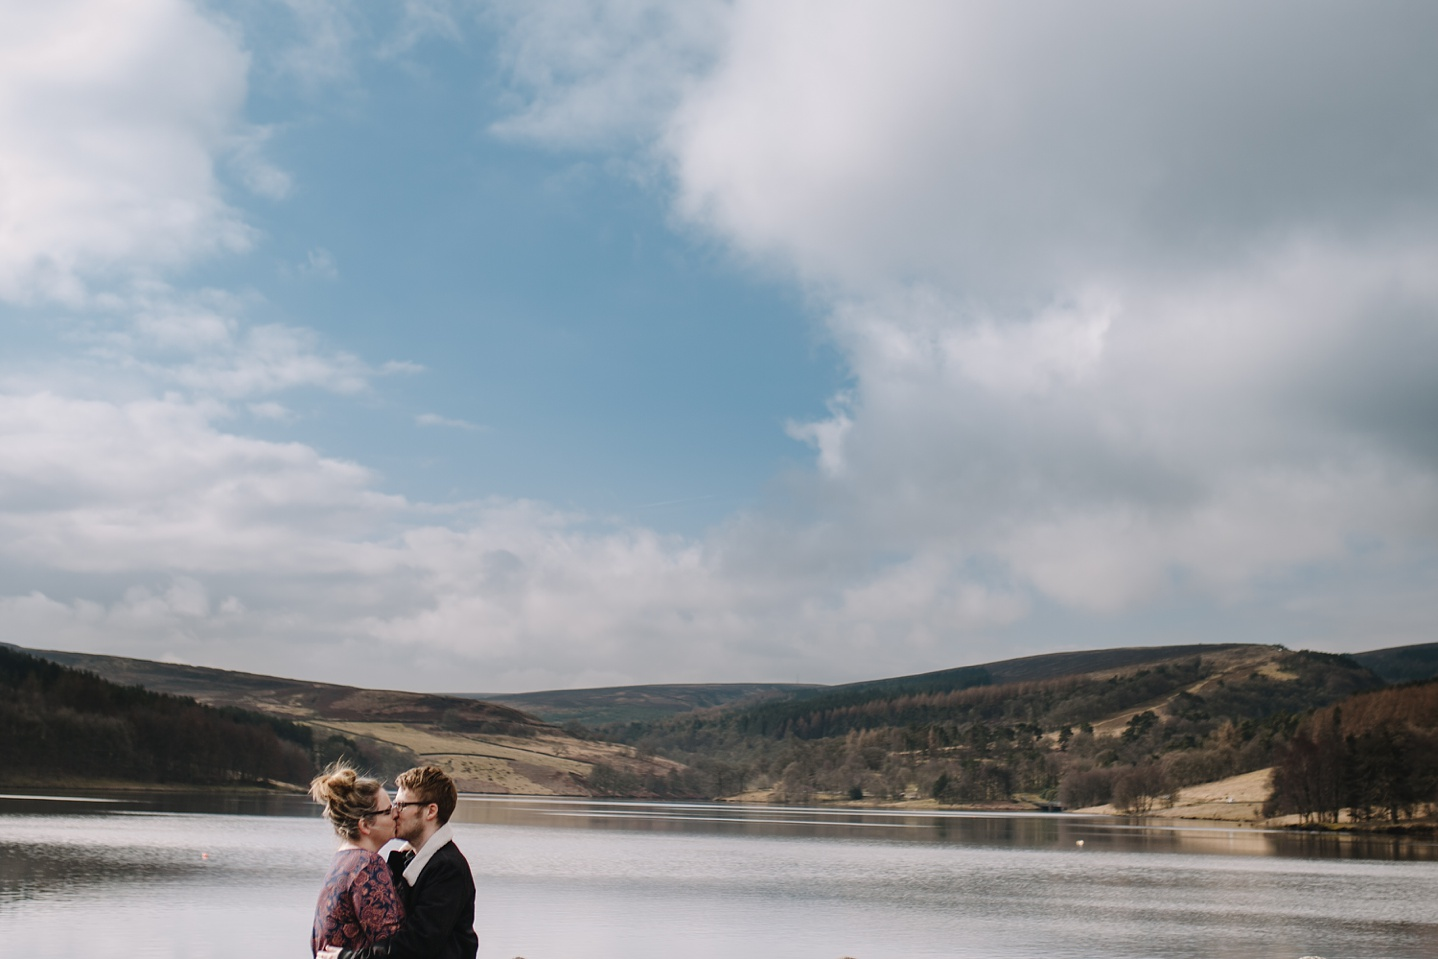 man and woman laughing with Eerwood reservoir in the background